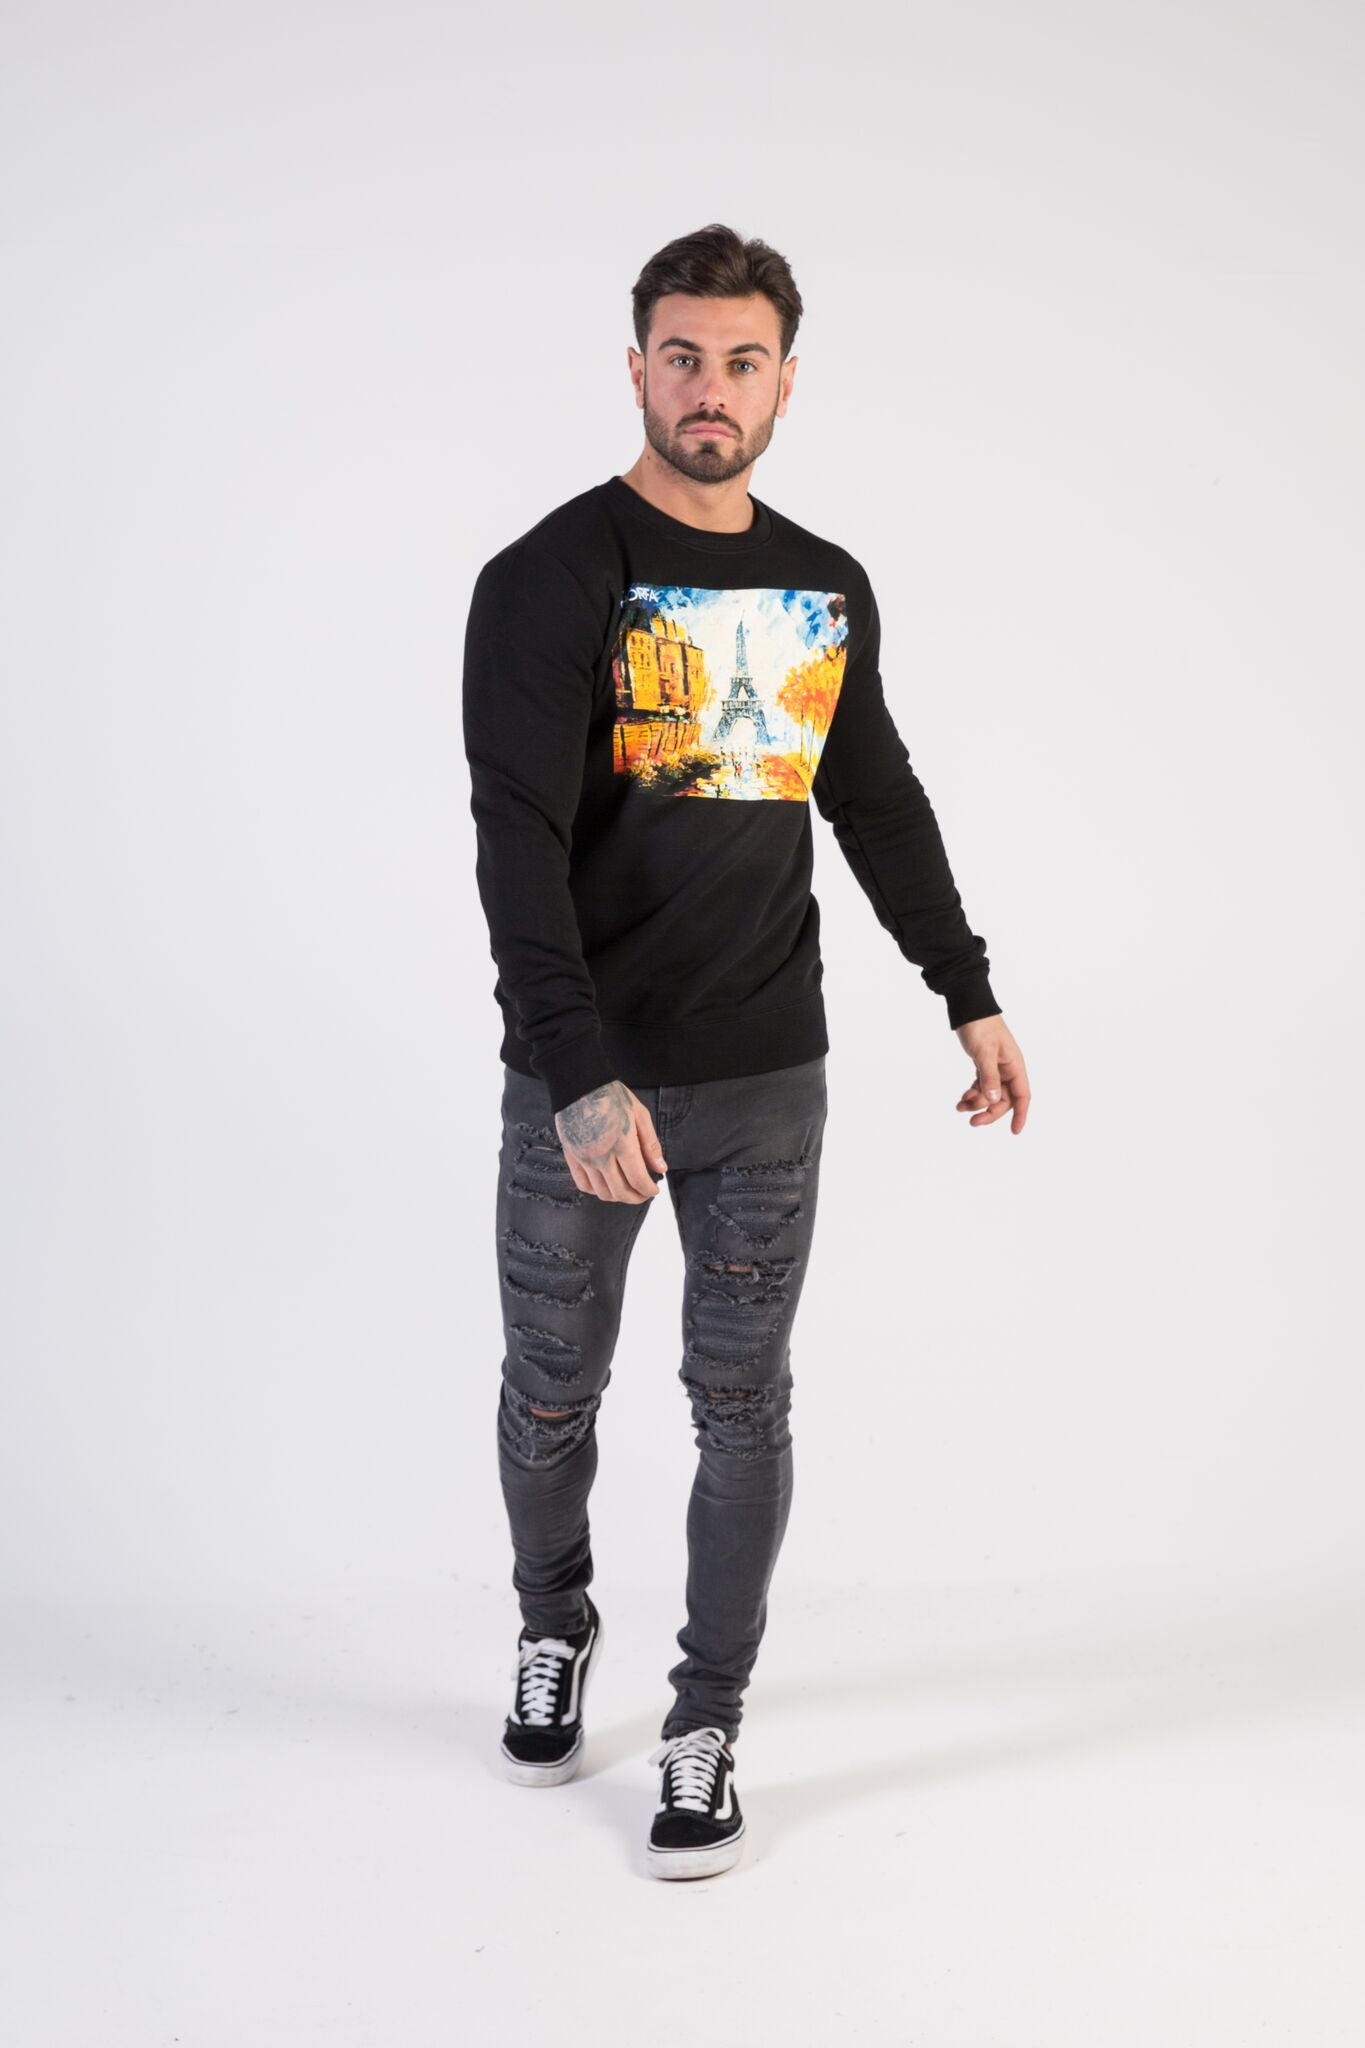 WATERCOLOUR IN PARIS Sweatshirt - HÖRFA is a men's global fashion brand that provides products such as Fashionable Watches, Wallets, Sunglasses, Belts, Beard and Male Grooming Products